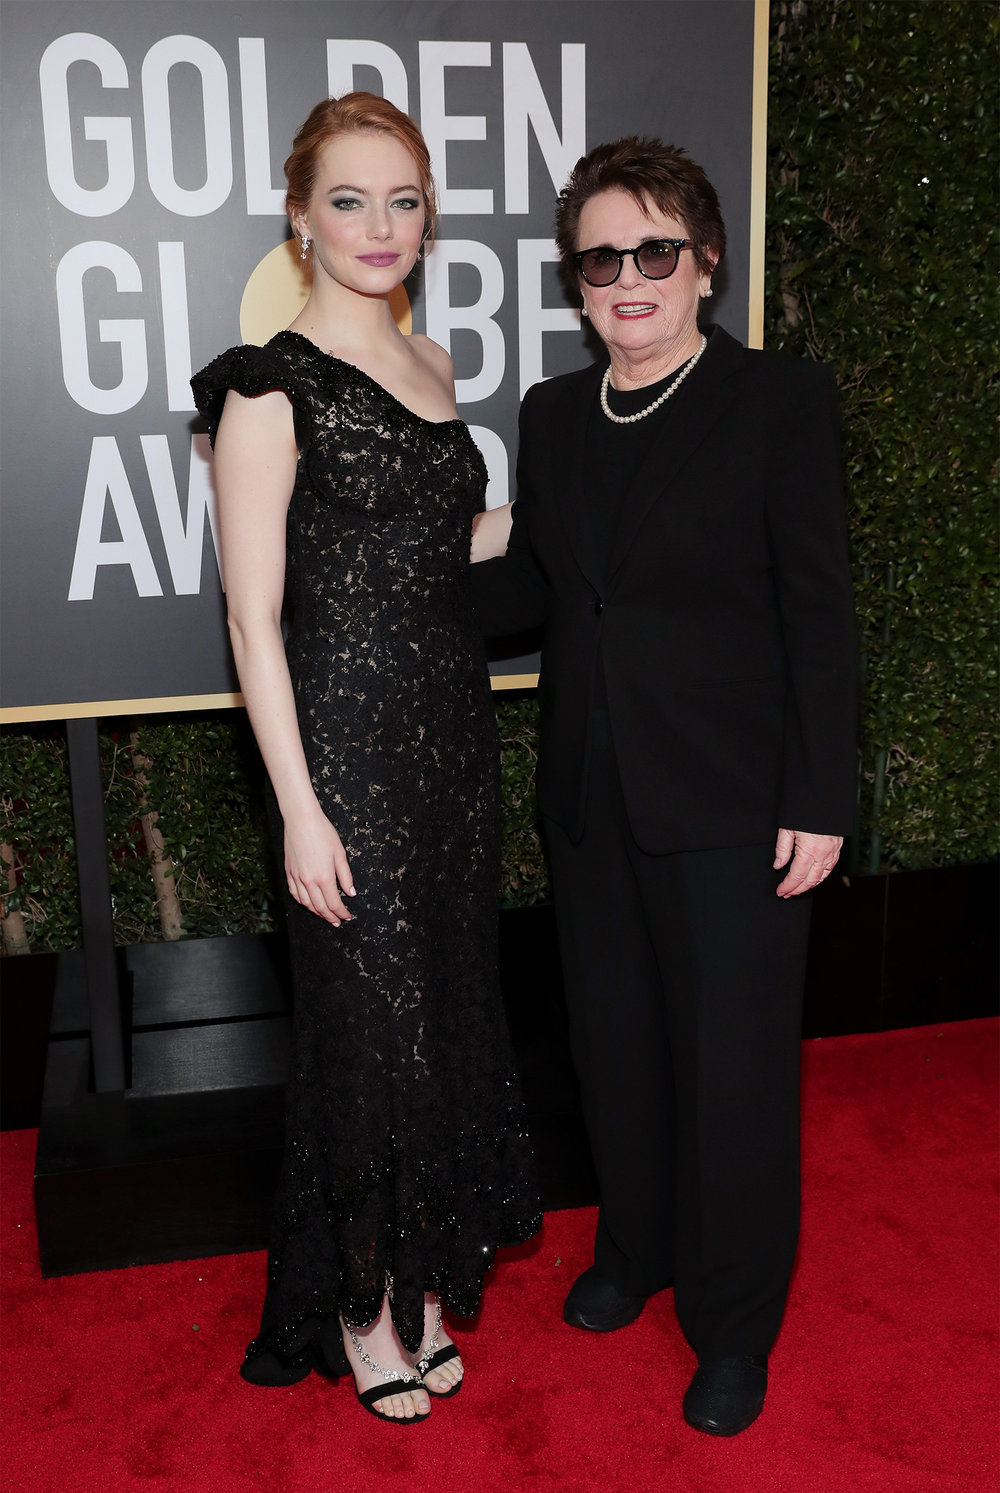 golden-globes-2018-activists-52.jpg